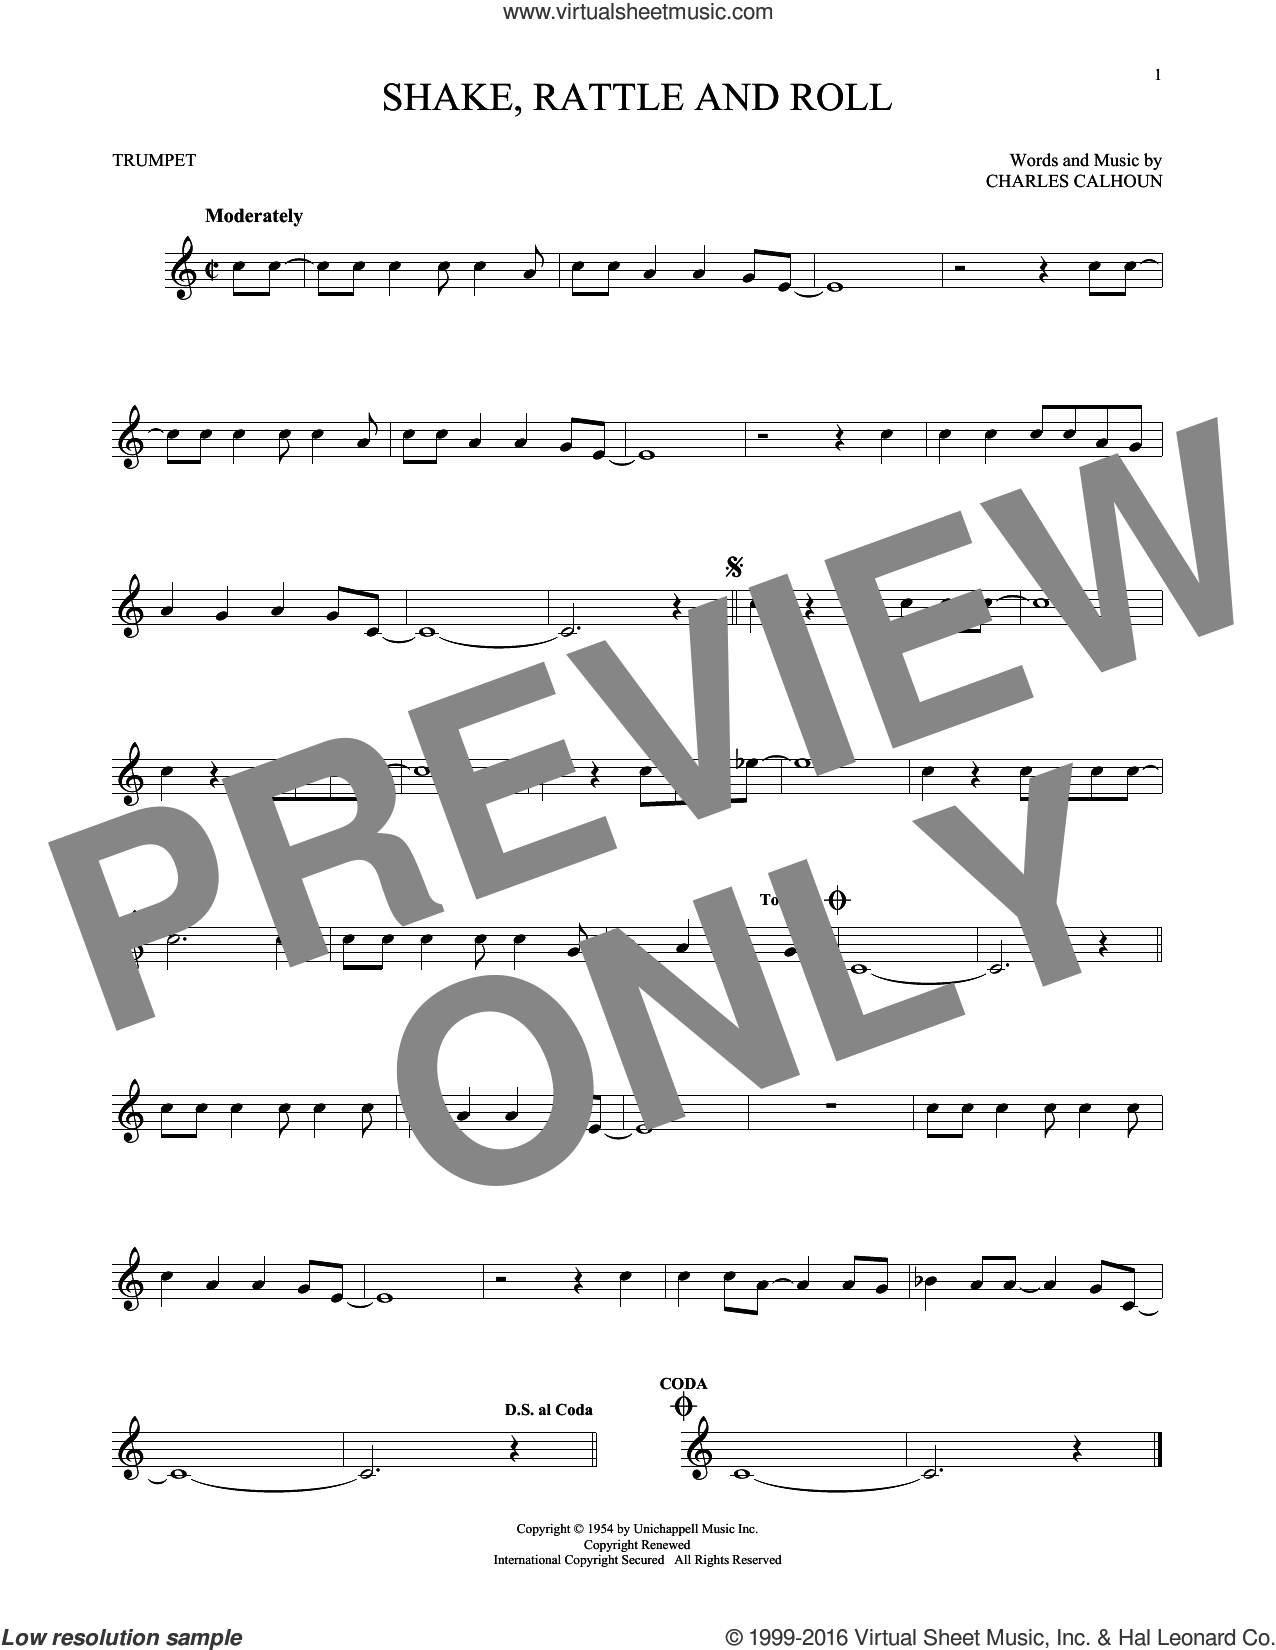 Shake, Rattle And Roll sheet music for trumpet solo by Bill Haley & His Comets, Arthur Conley and Charles Calhoun, intermediate skill level